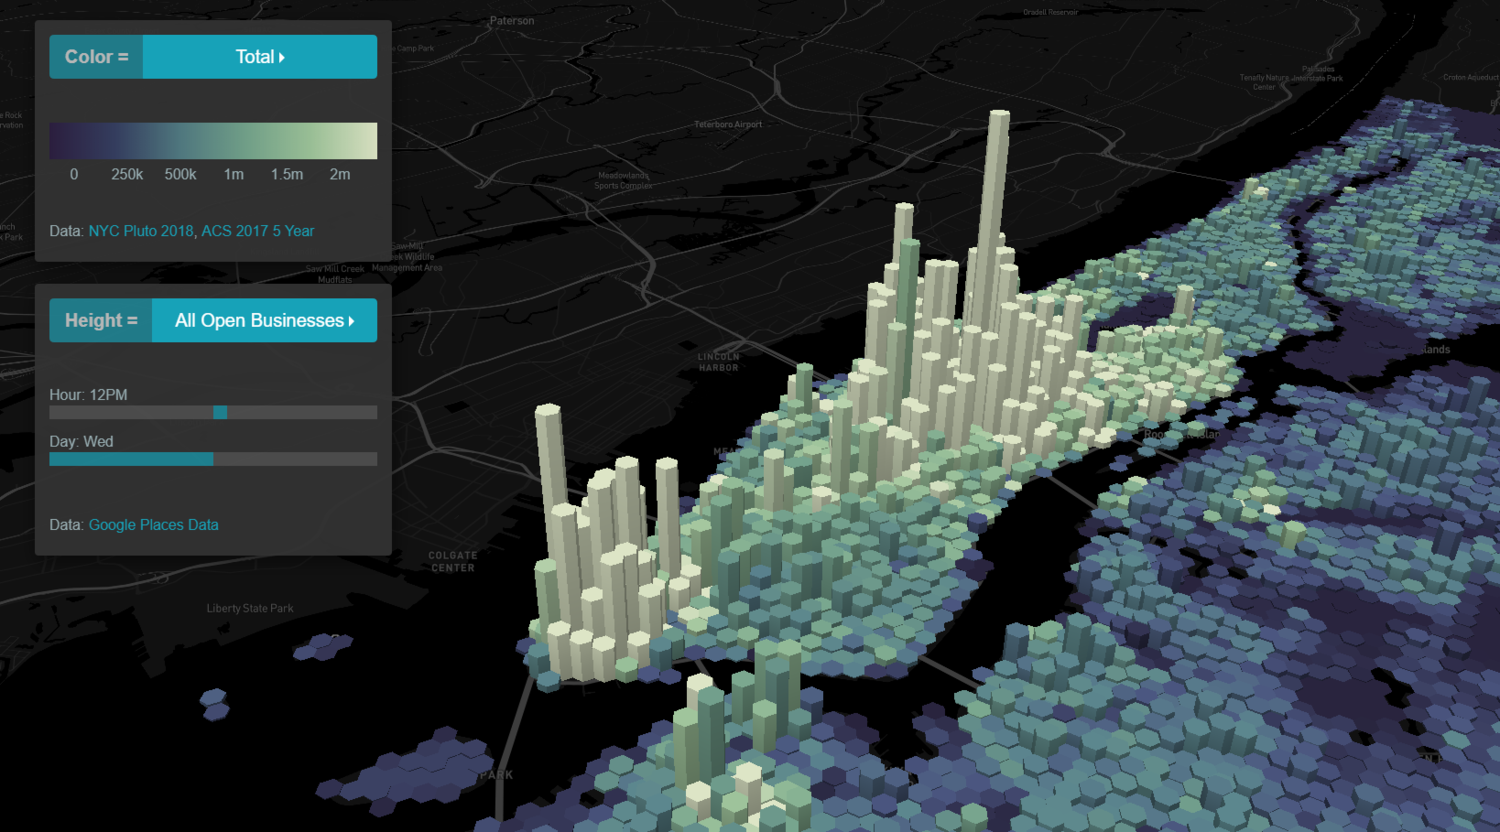 Hive : Find relationships between business opening hours and civic open data-sets with this 3D urban data viz tool.